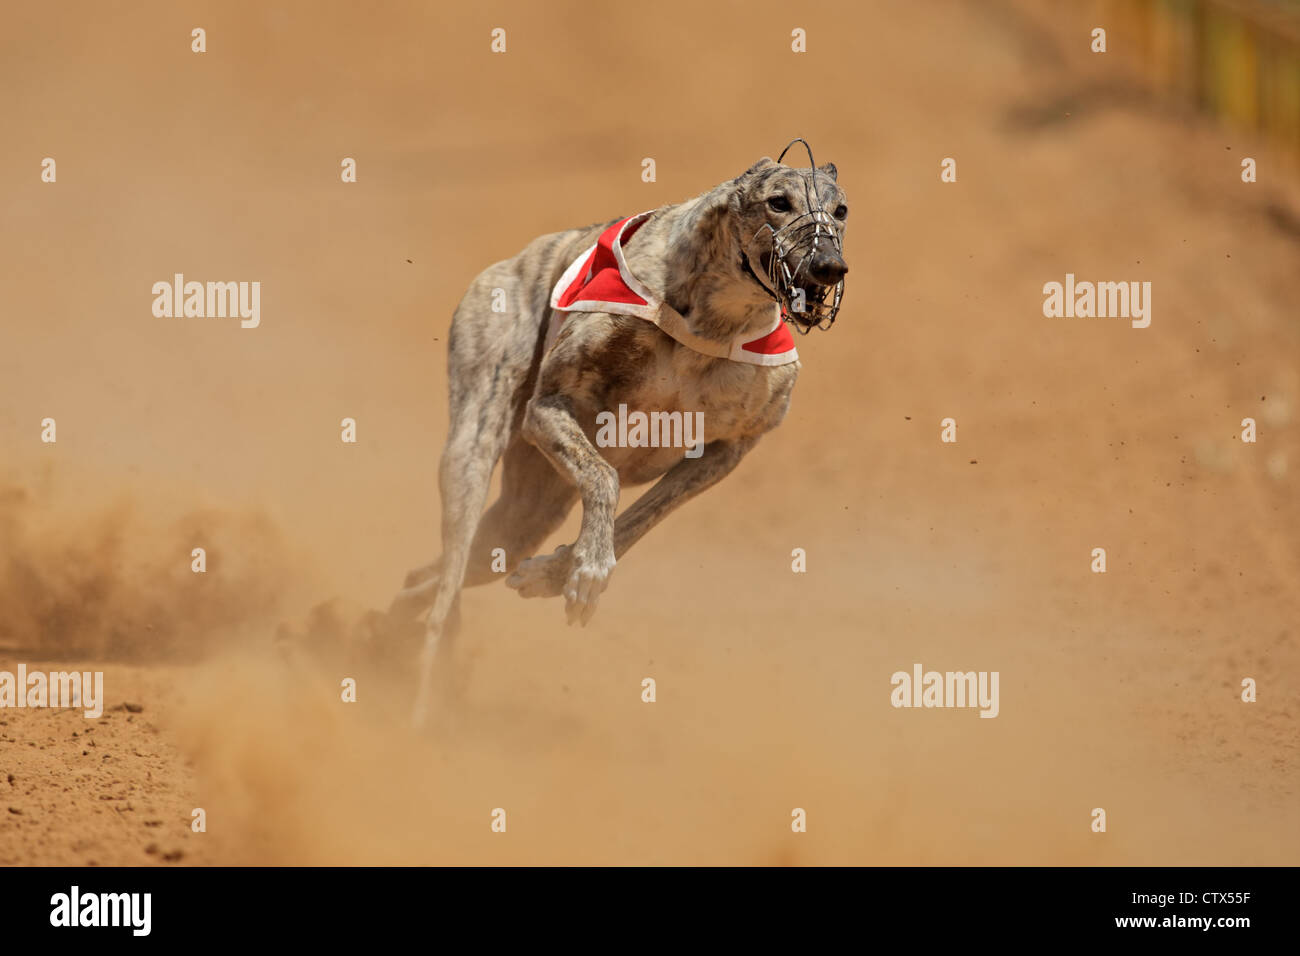 Greyhound at full speed during a race - Stock Image